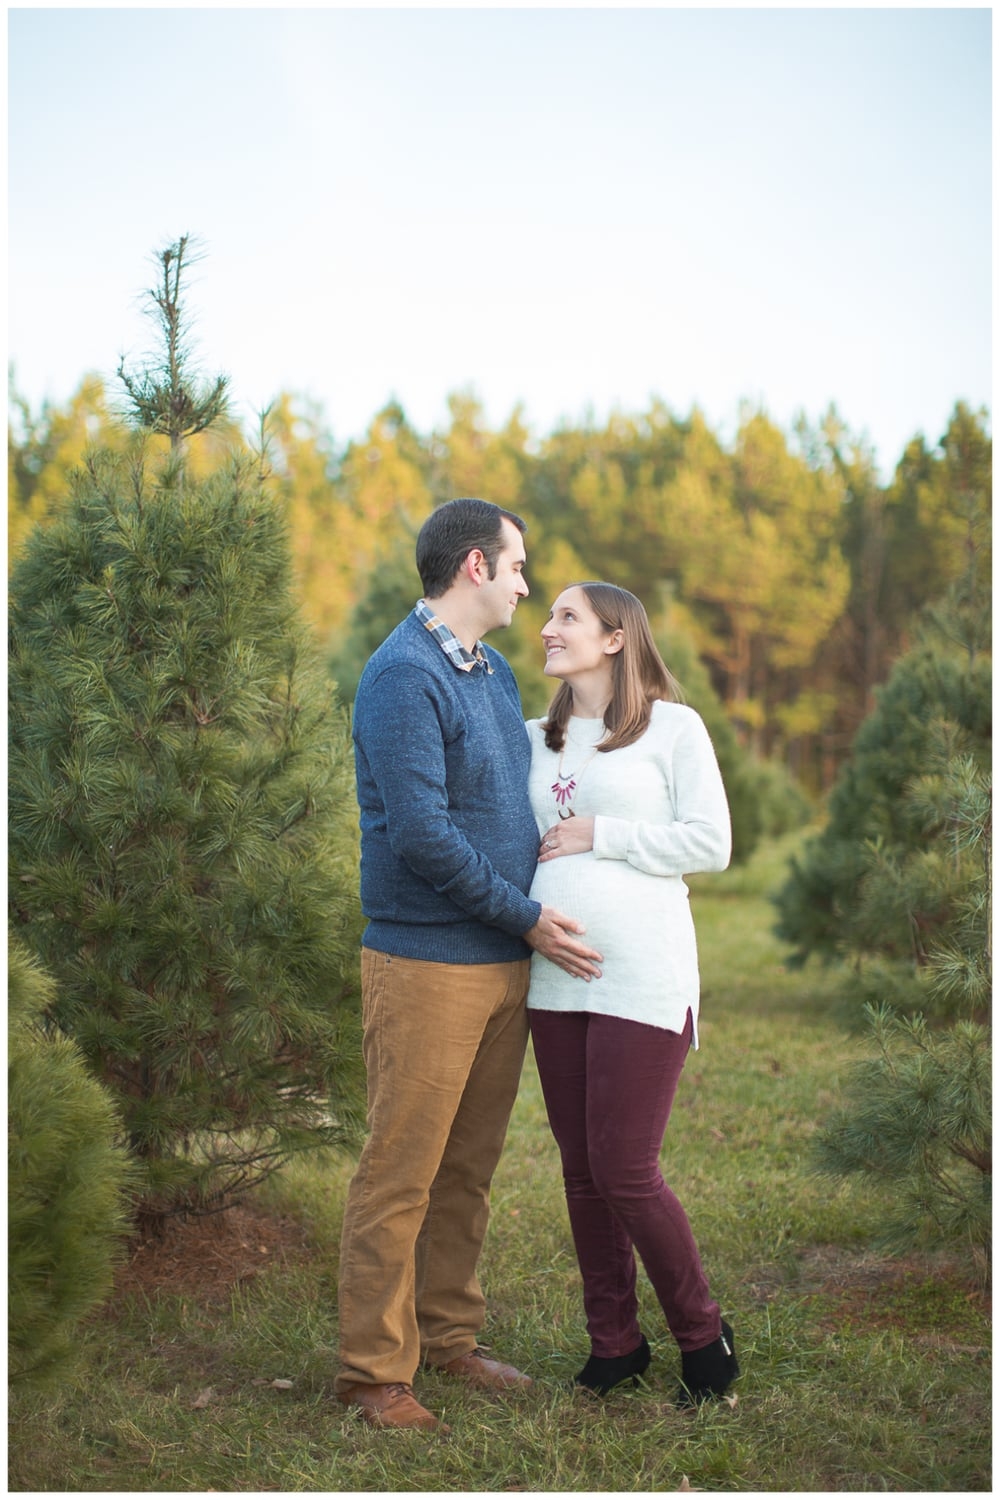 Richmond, VA and Aberdeen, UK Maternity Photography